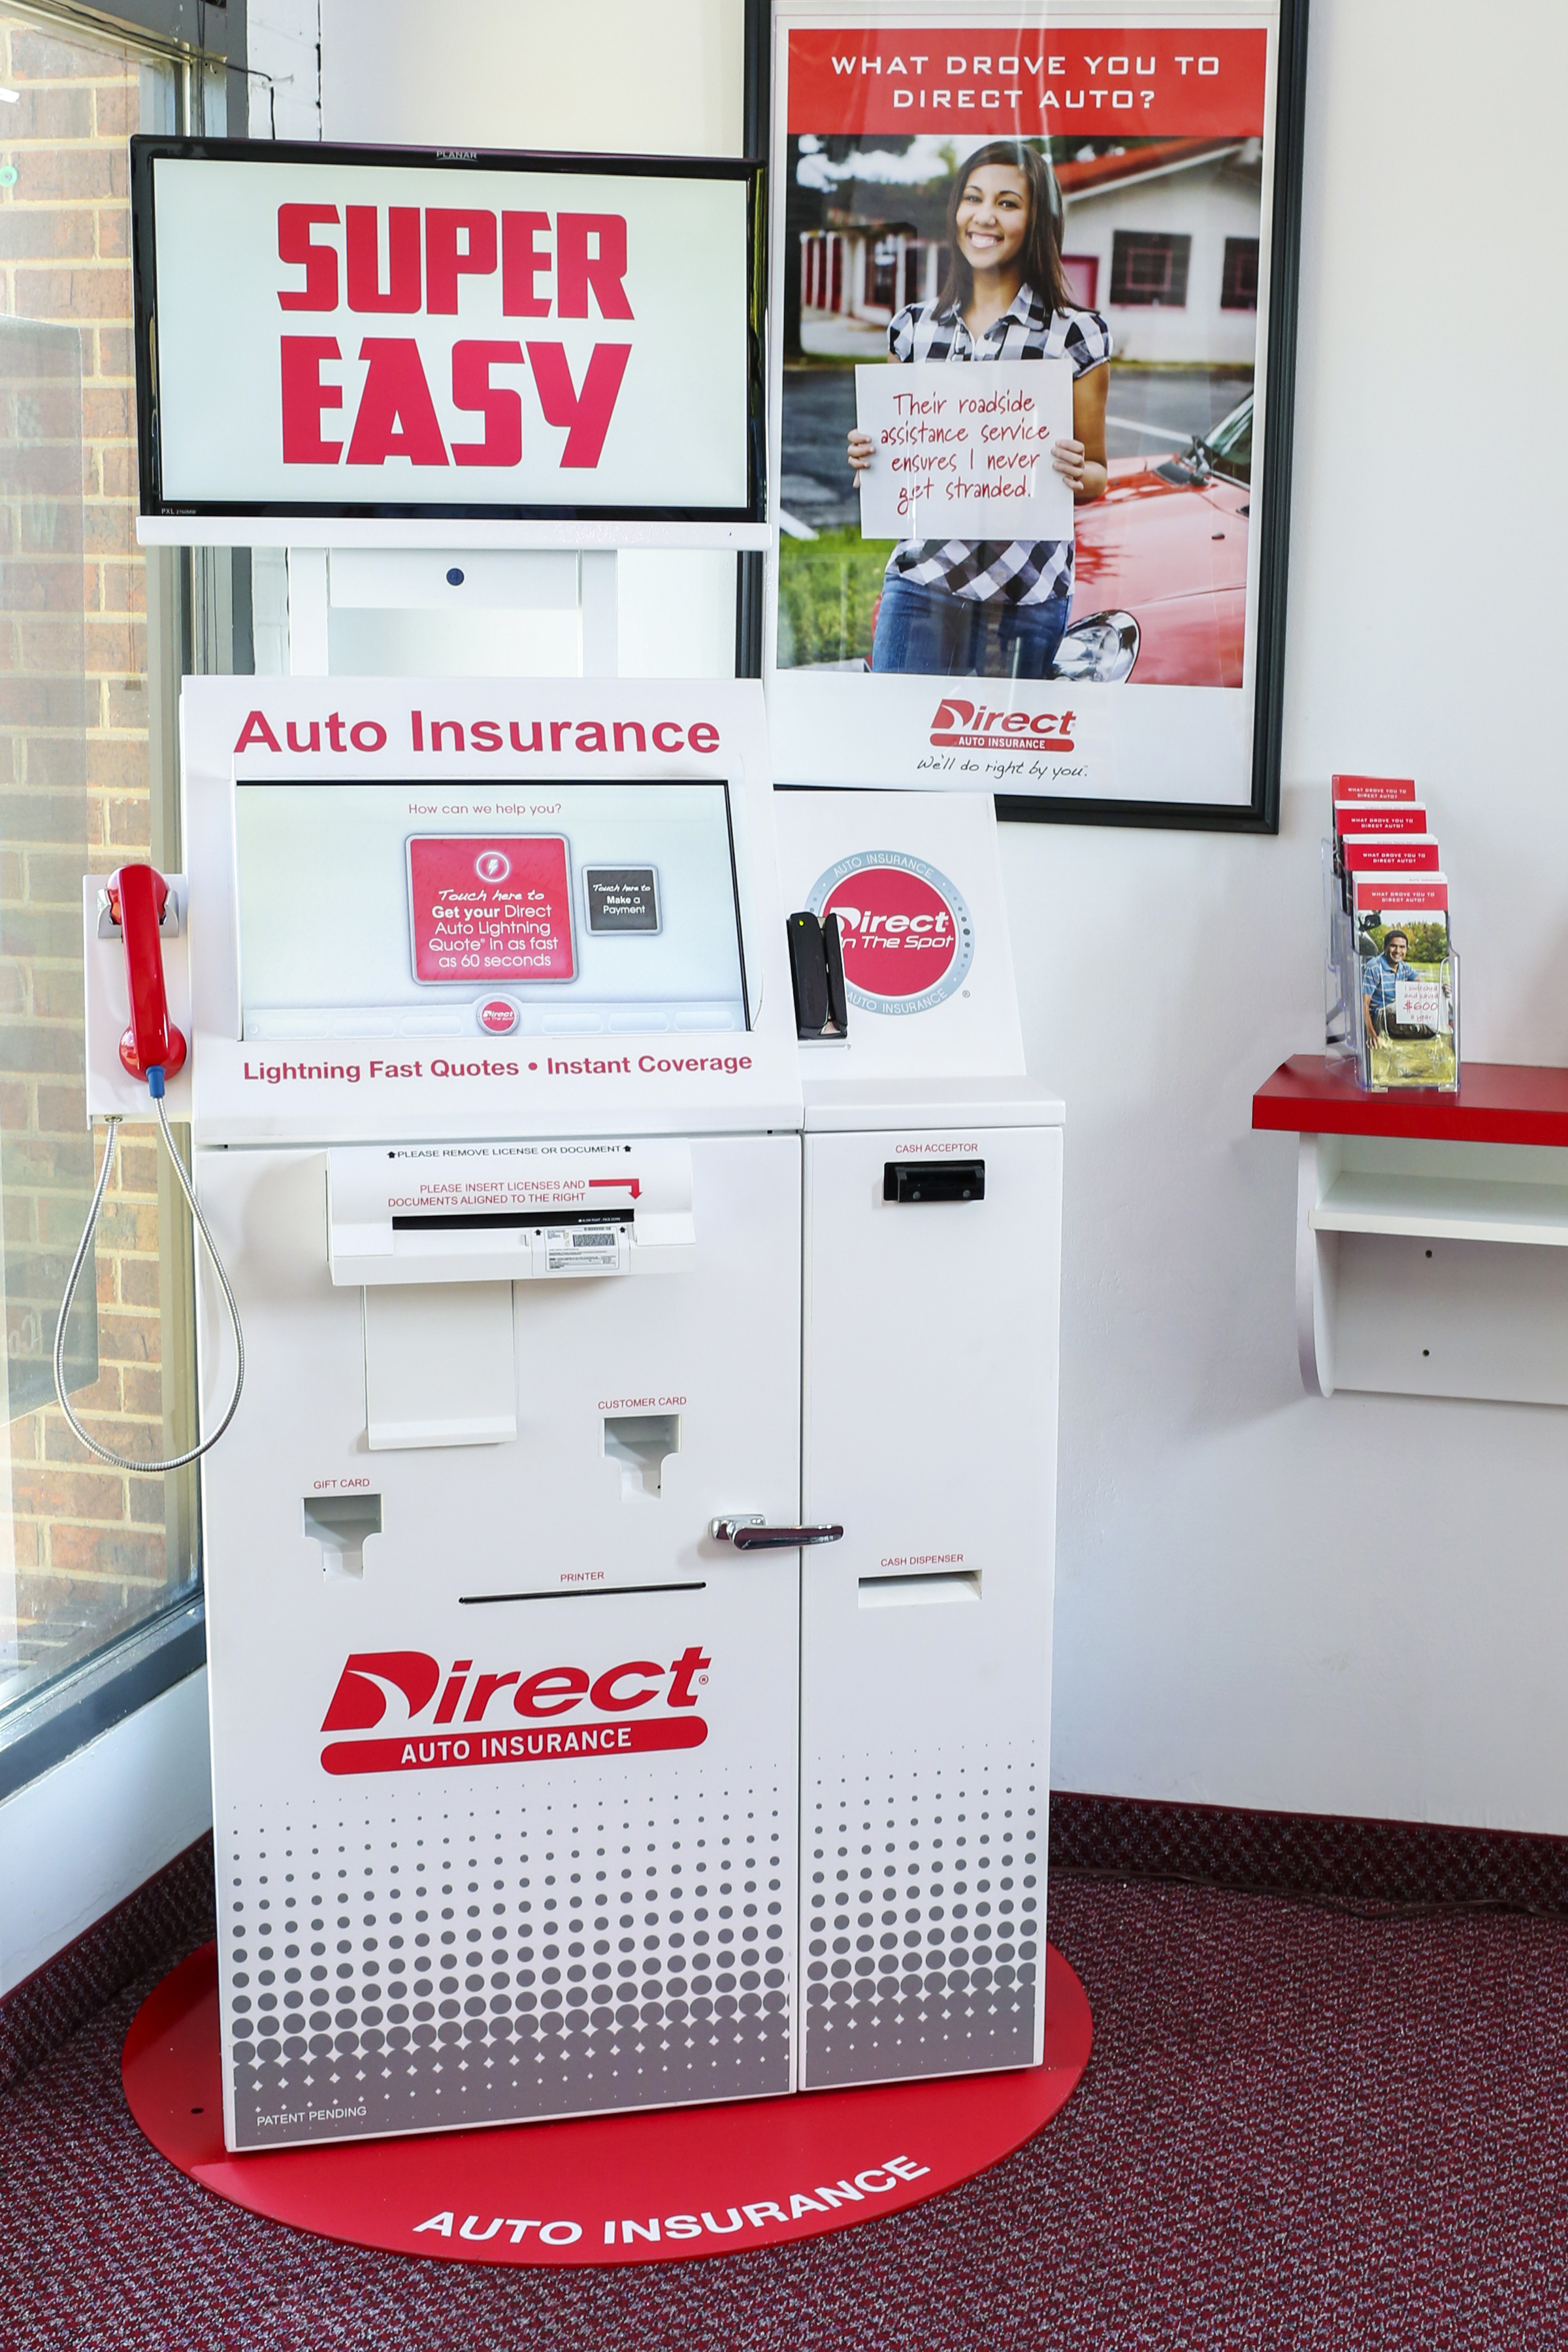 Direct General Insurance Quotes Insurance Kiosks The Wave Of The Future